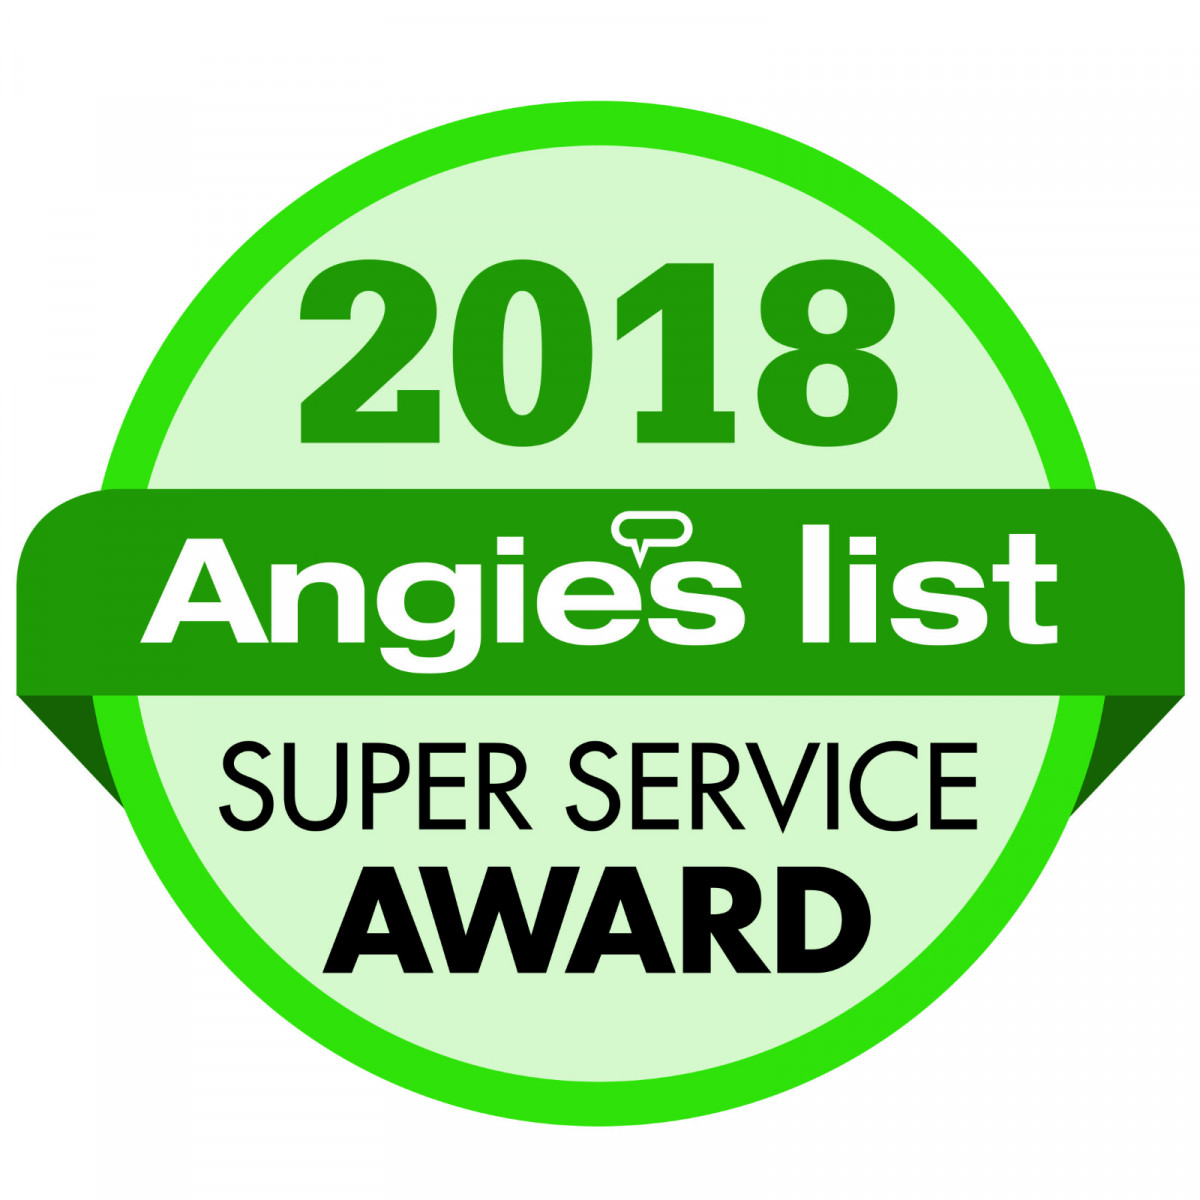 Sky Power Wash were awarded the 2018 Super Service Award from Angie's List